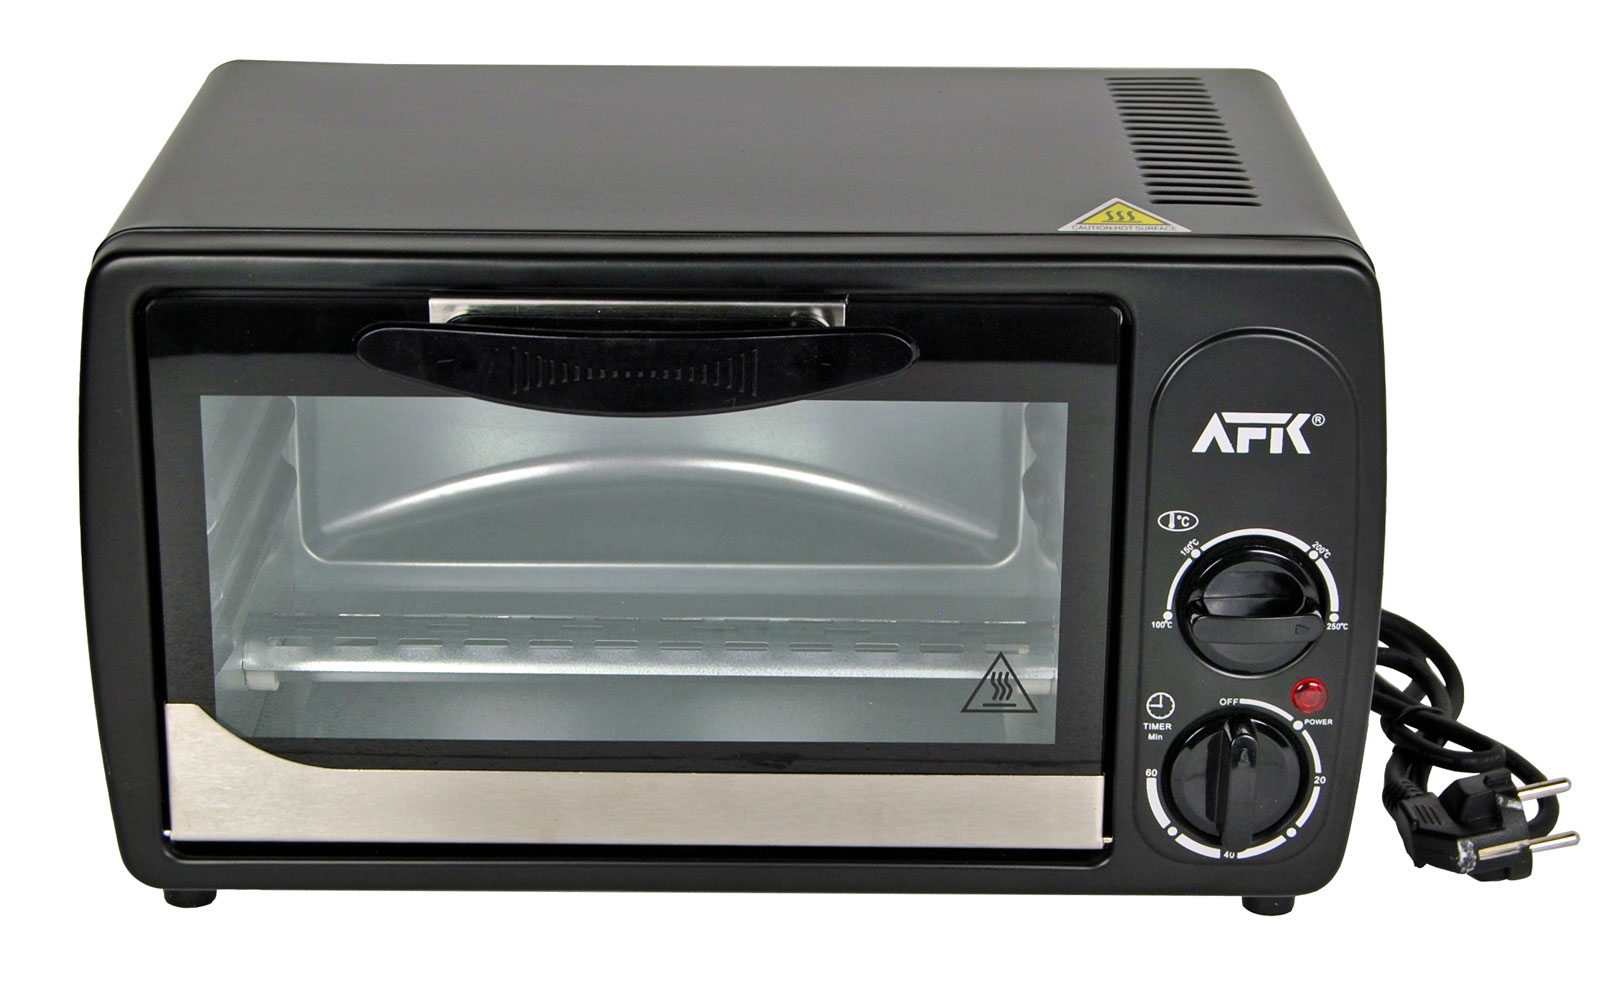 afk minibackofen 1000w timer pizzaofen 26cm ofen ober unterhitze backofen 729389598488 ebay. Black Bedroom Furniture Sets. Home Design Ideas